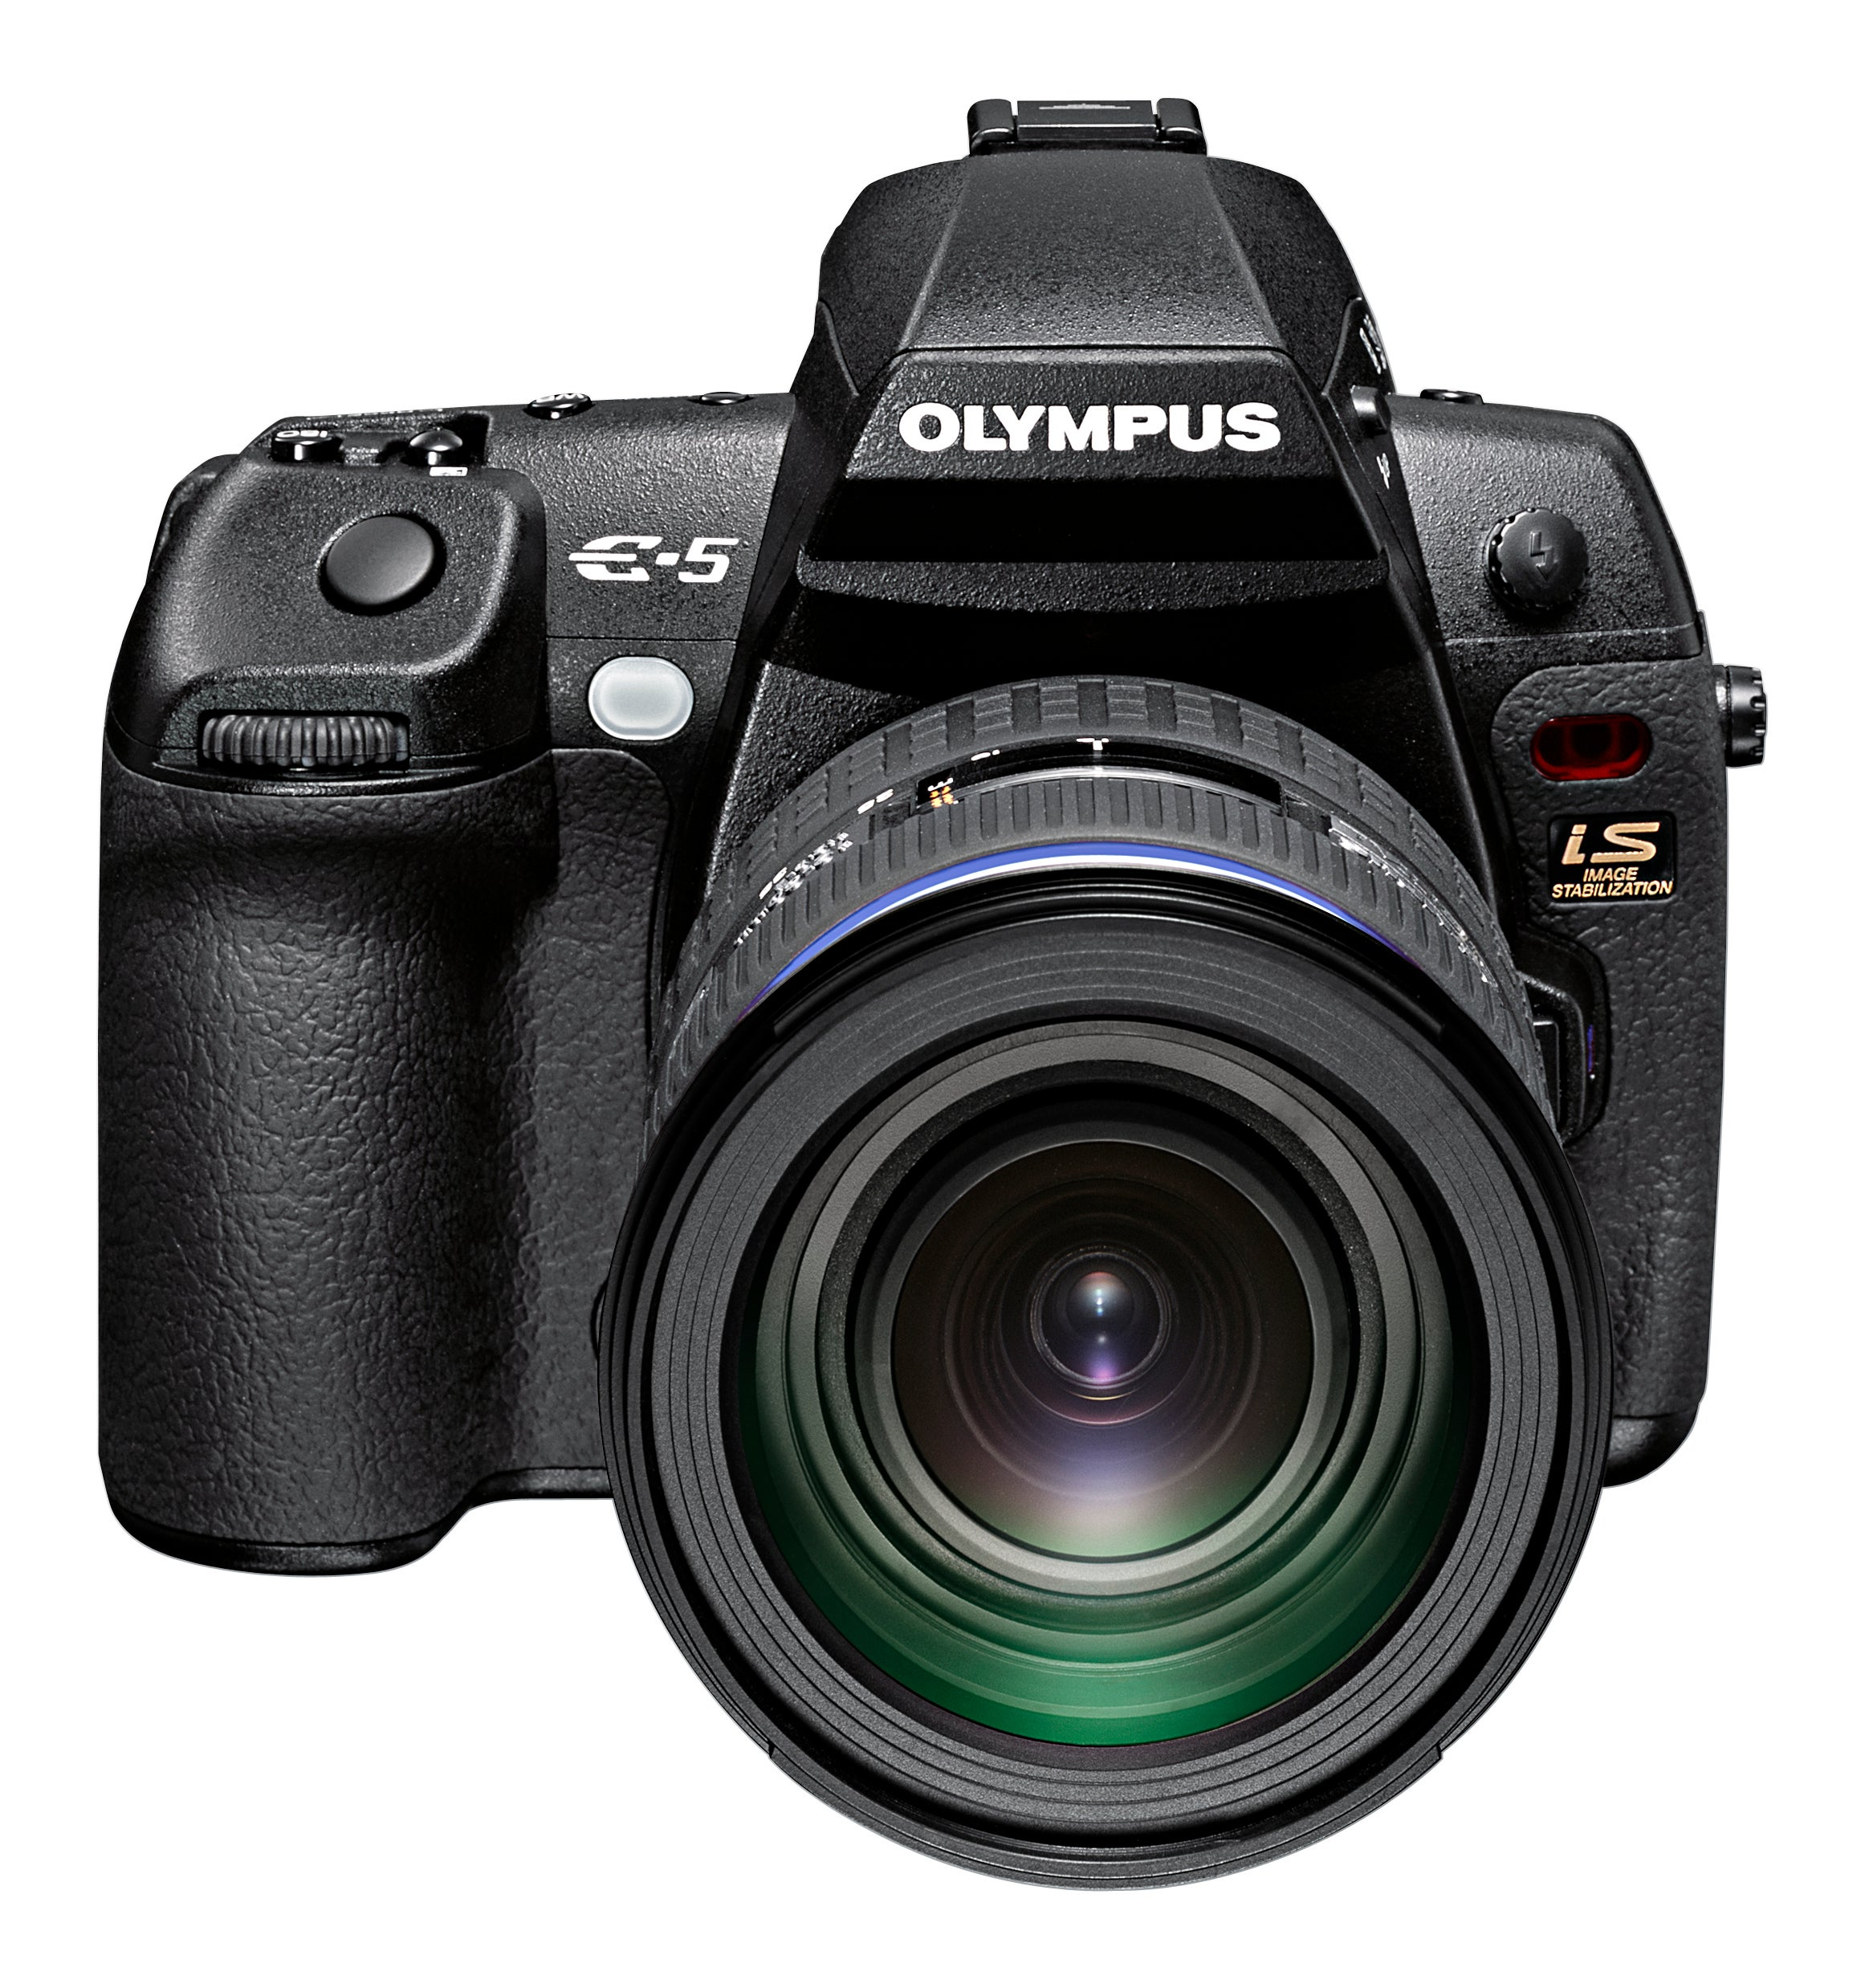 olympus e 5 pro dslr announced hands on preview video what digital camera. Black Bedroom Furniture Sets. Home Design Ideas